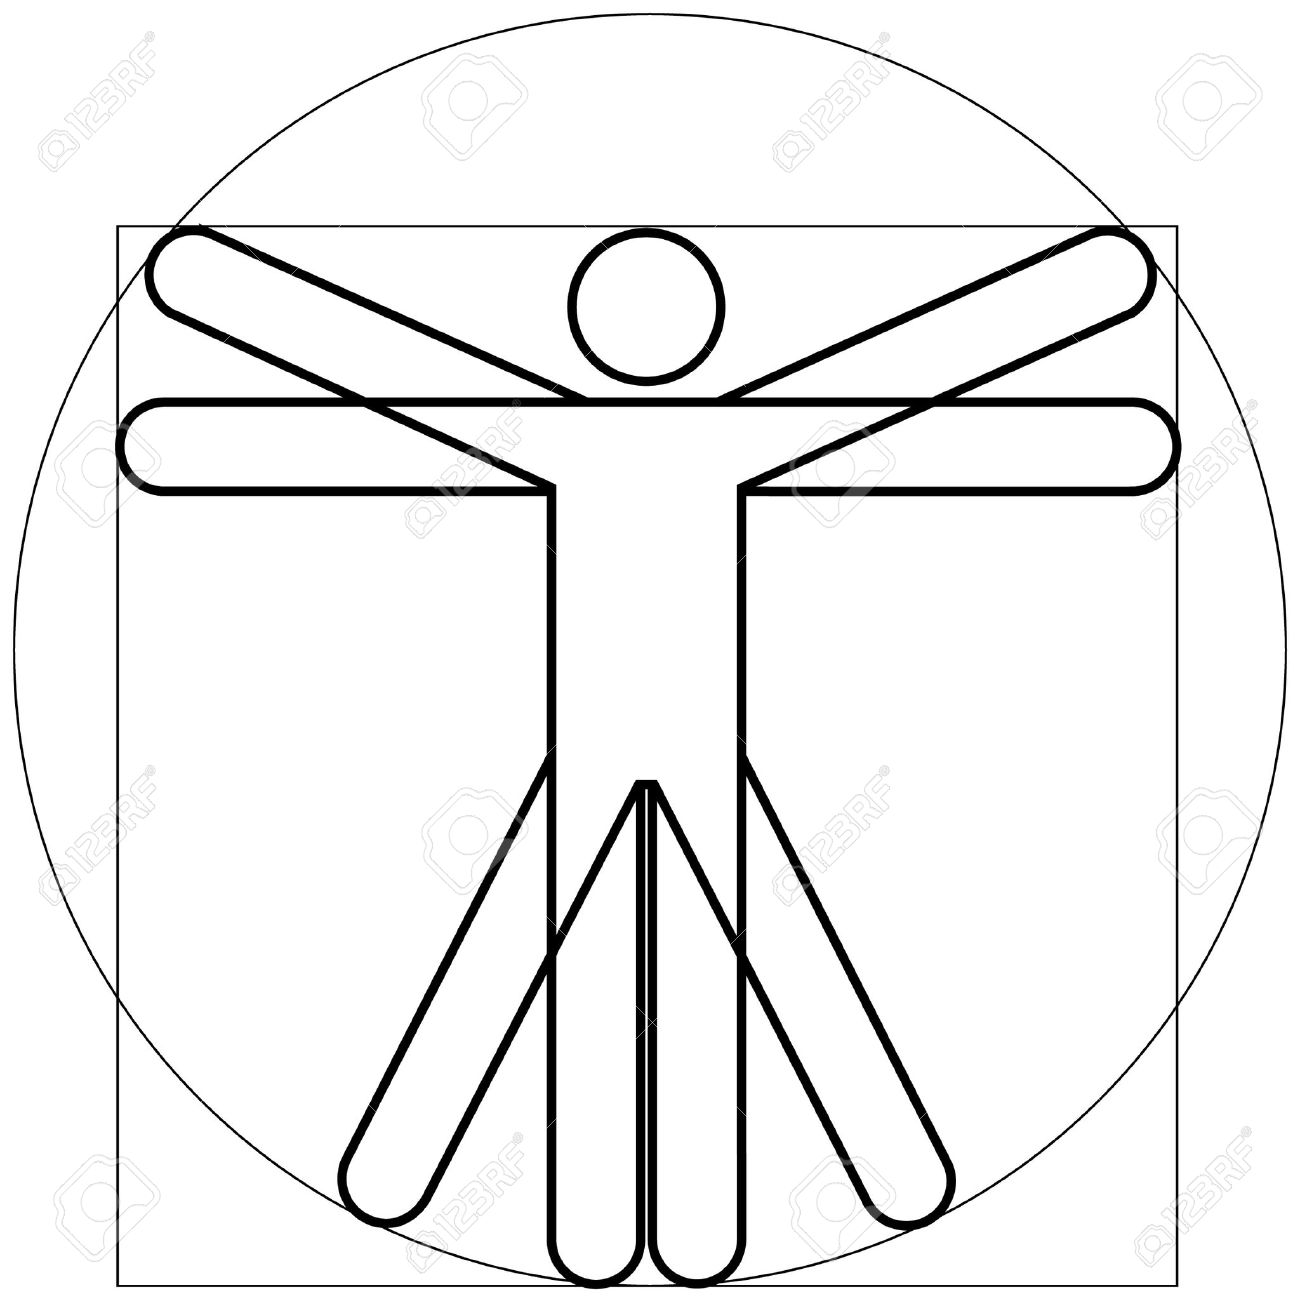 Vitruvian Man As Leonardo Da Vinchi Royalty Free Cliparts, Vectors.